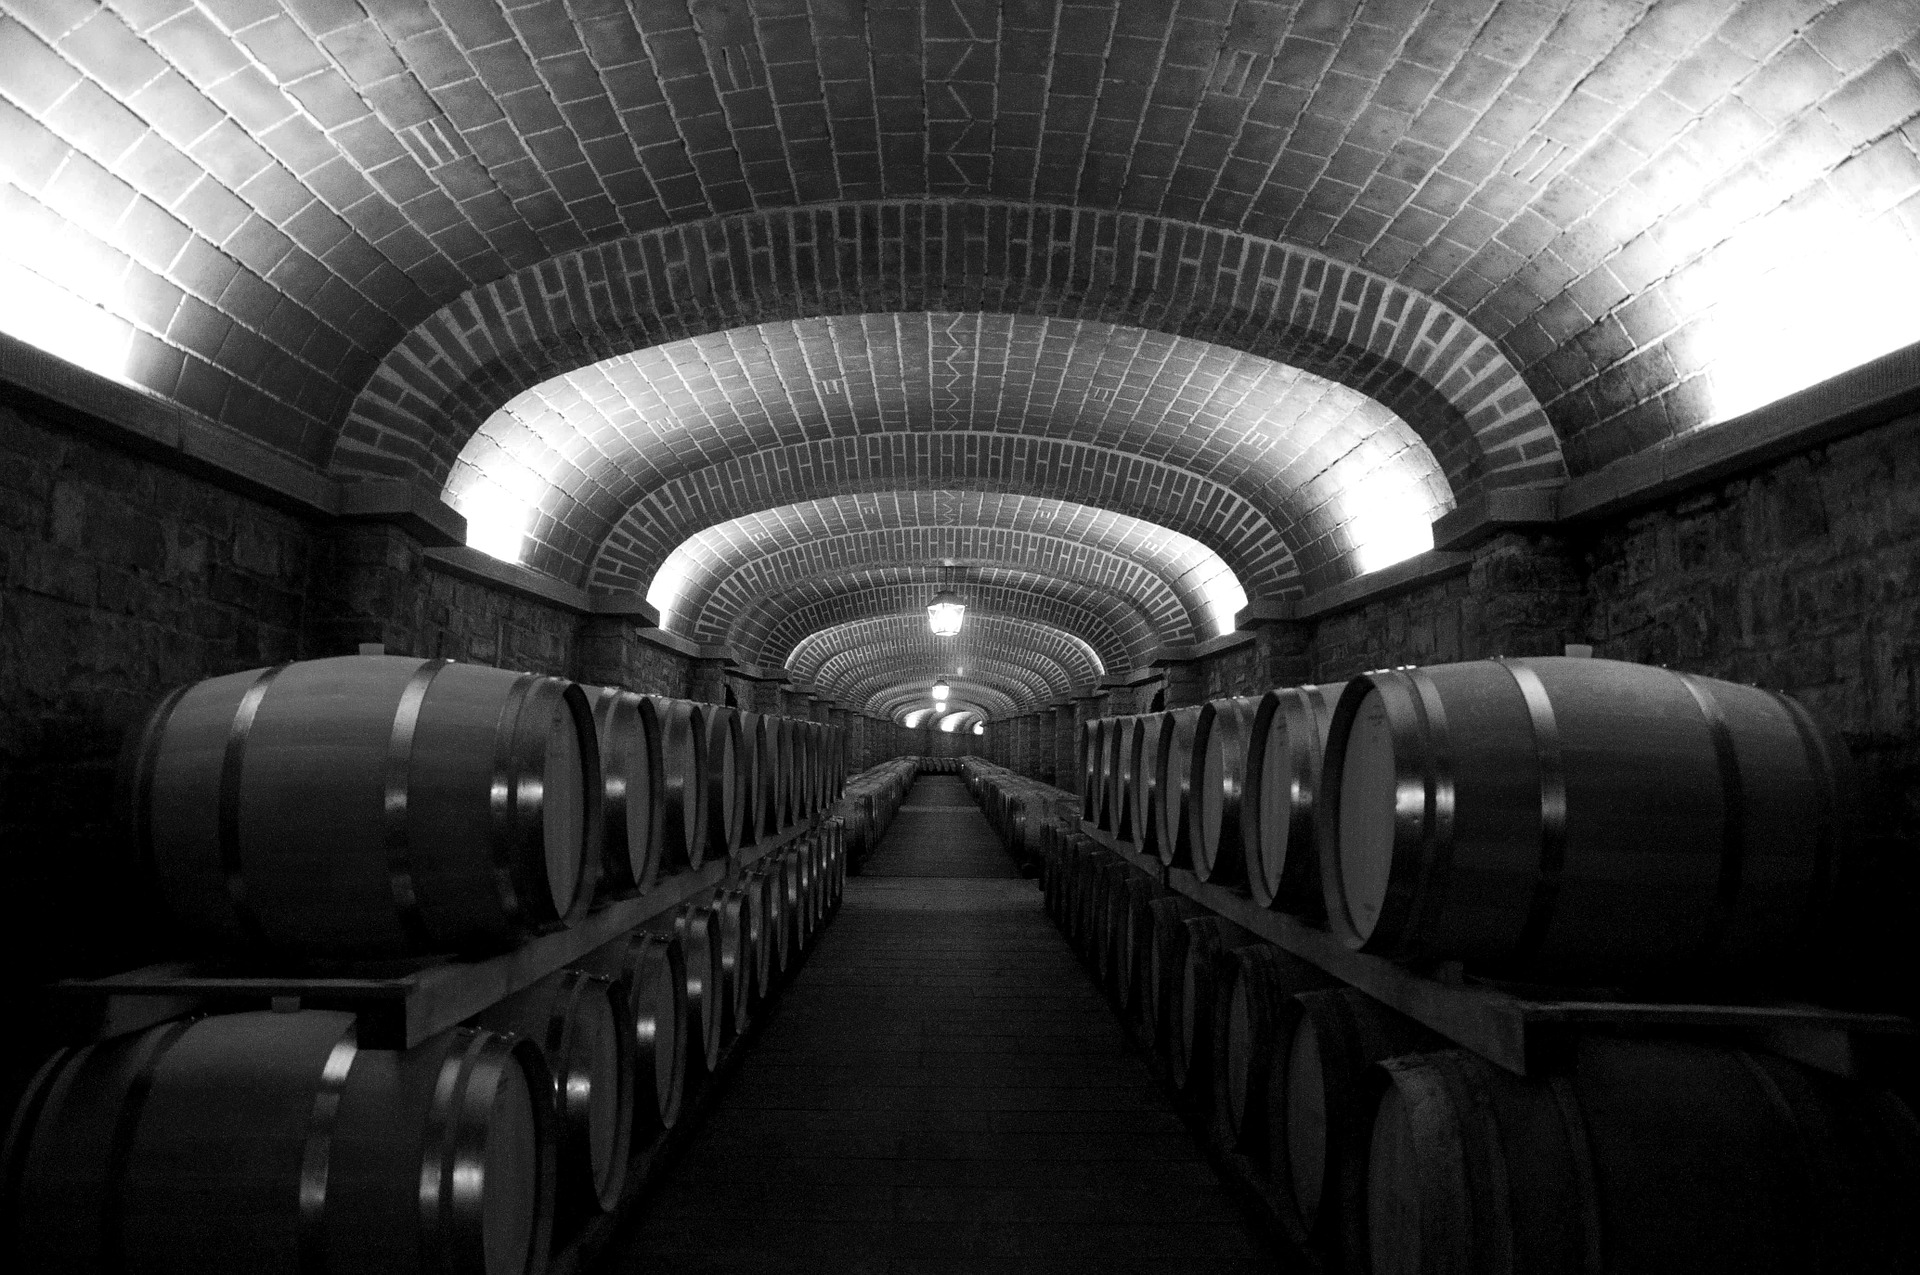 Wine Cellar Fabrication: 5 Welding Gear You Need to Fabricate a Vintage Wine Cellar in Your Home